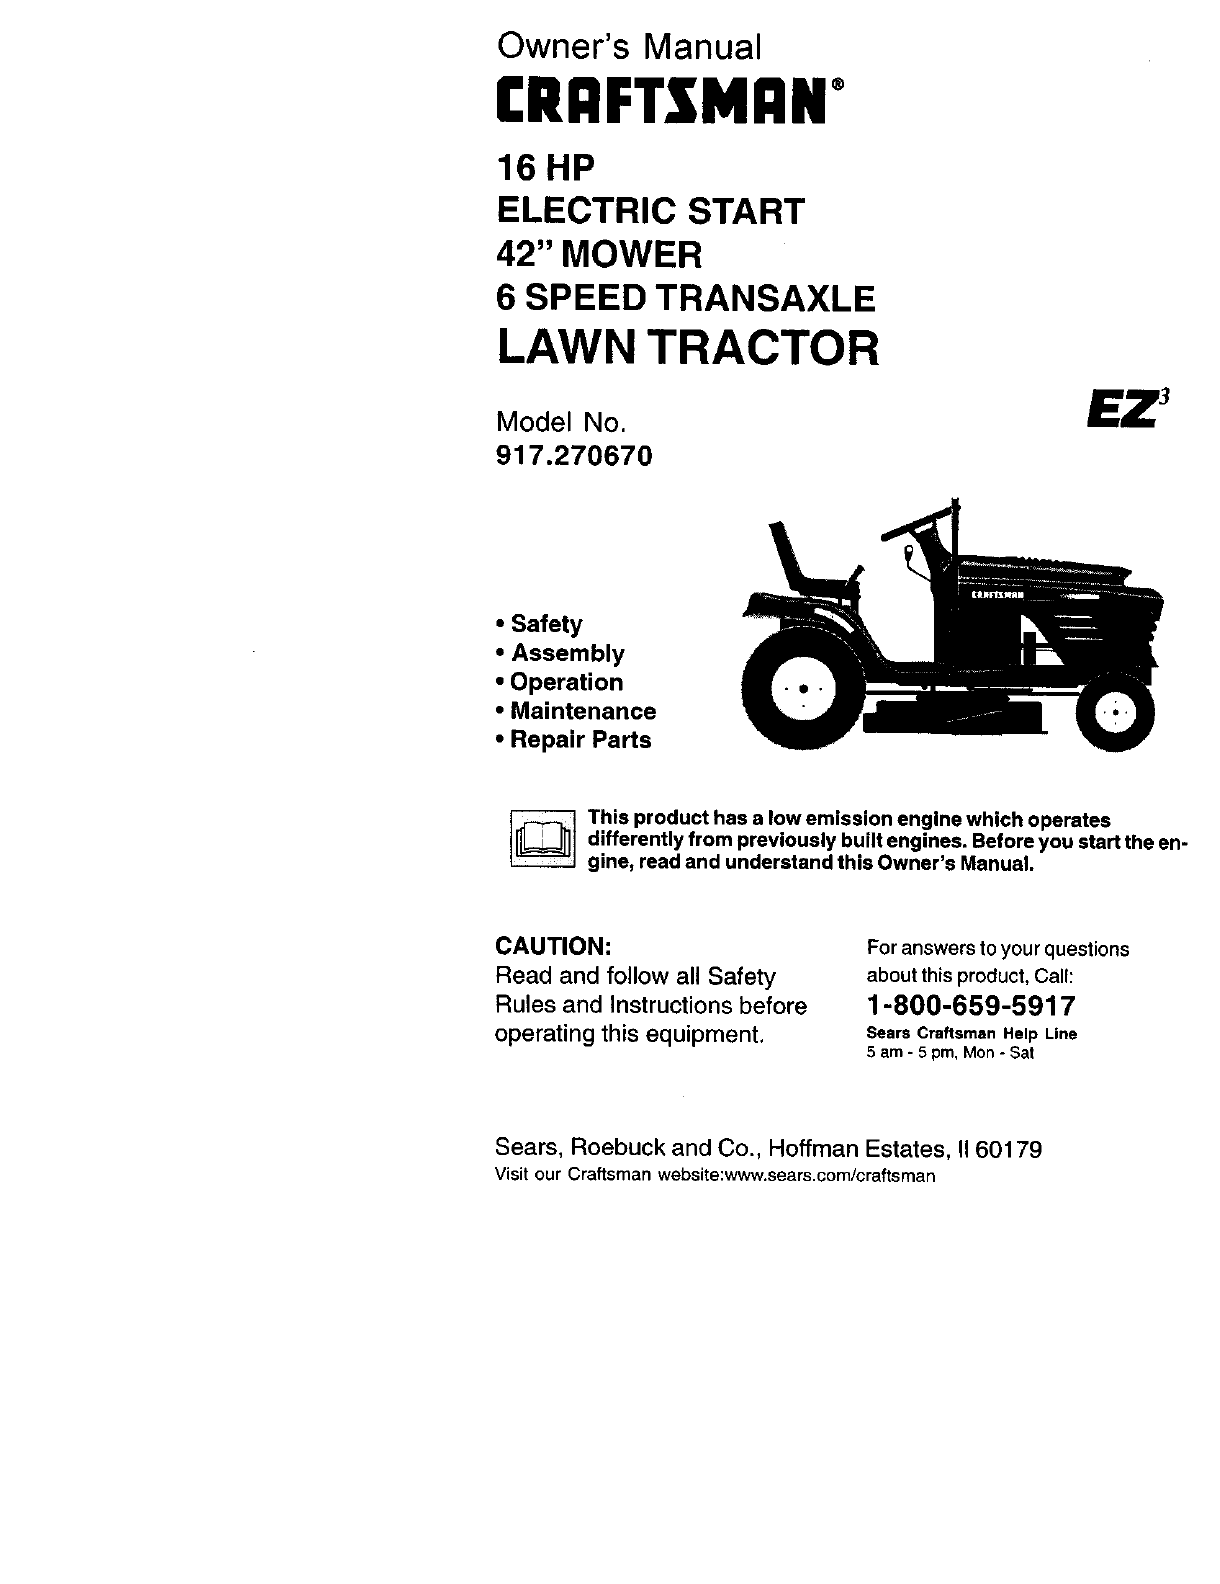 Craftsman 917270670 User Manual Lawn Tractor Manuals And